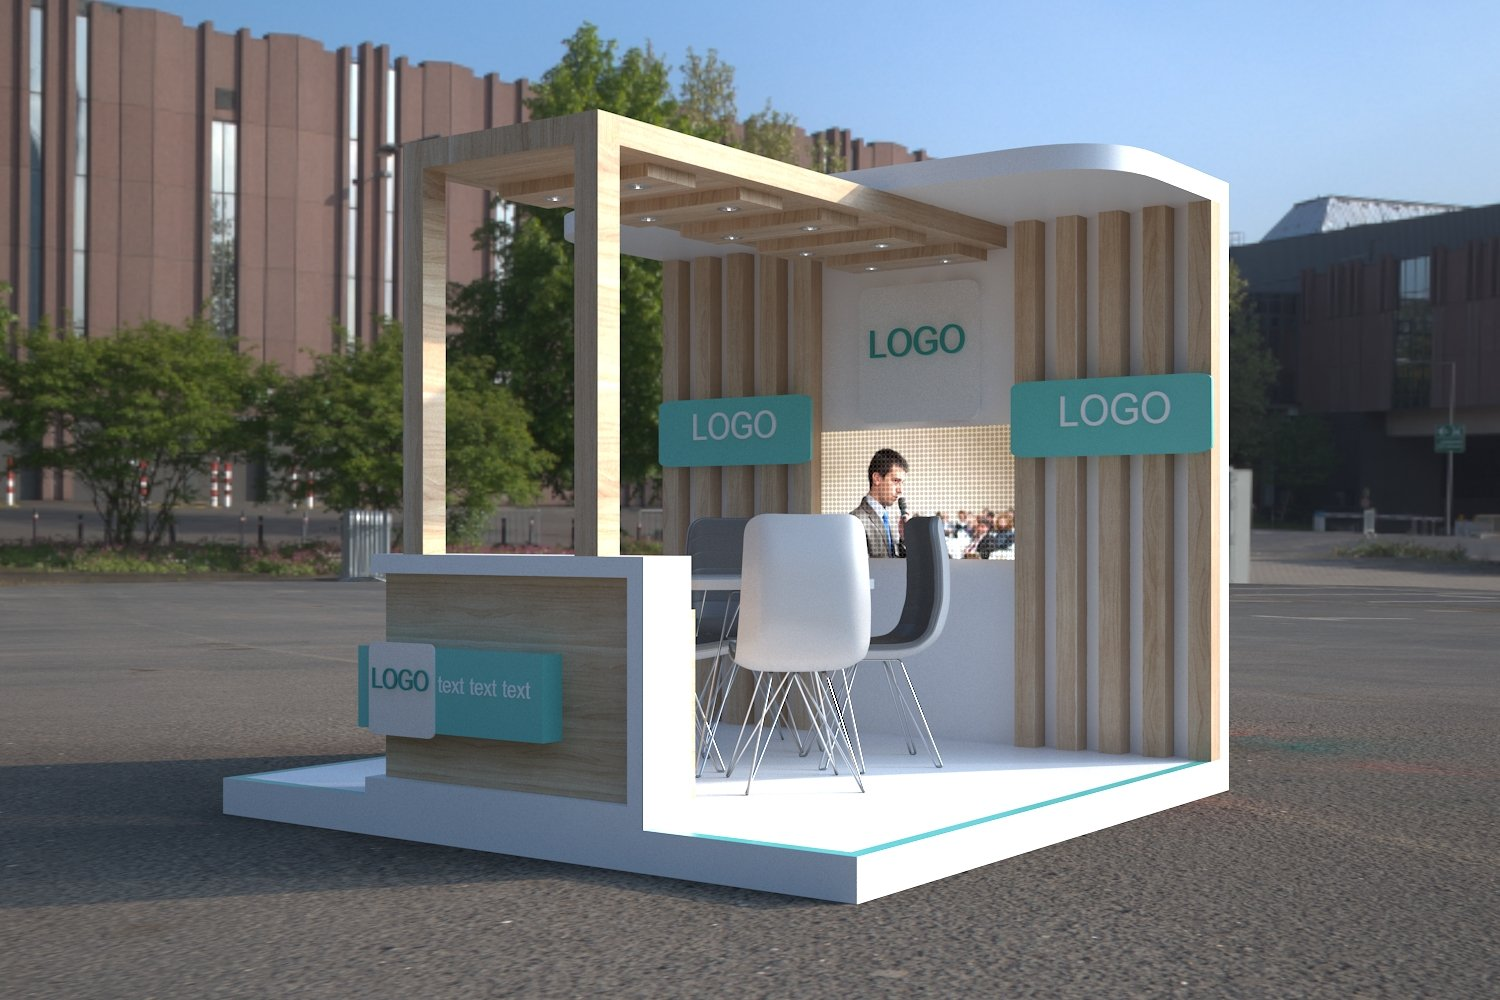 Exhibition Stand Sketchup : Exibition stands booths d cad model library grabcad